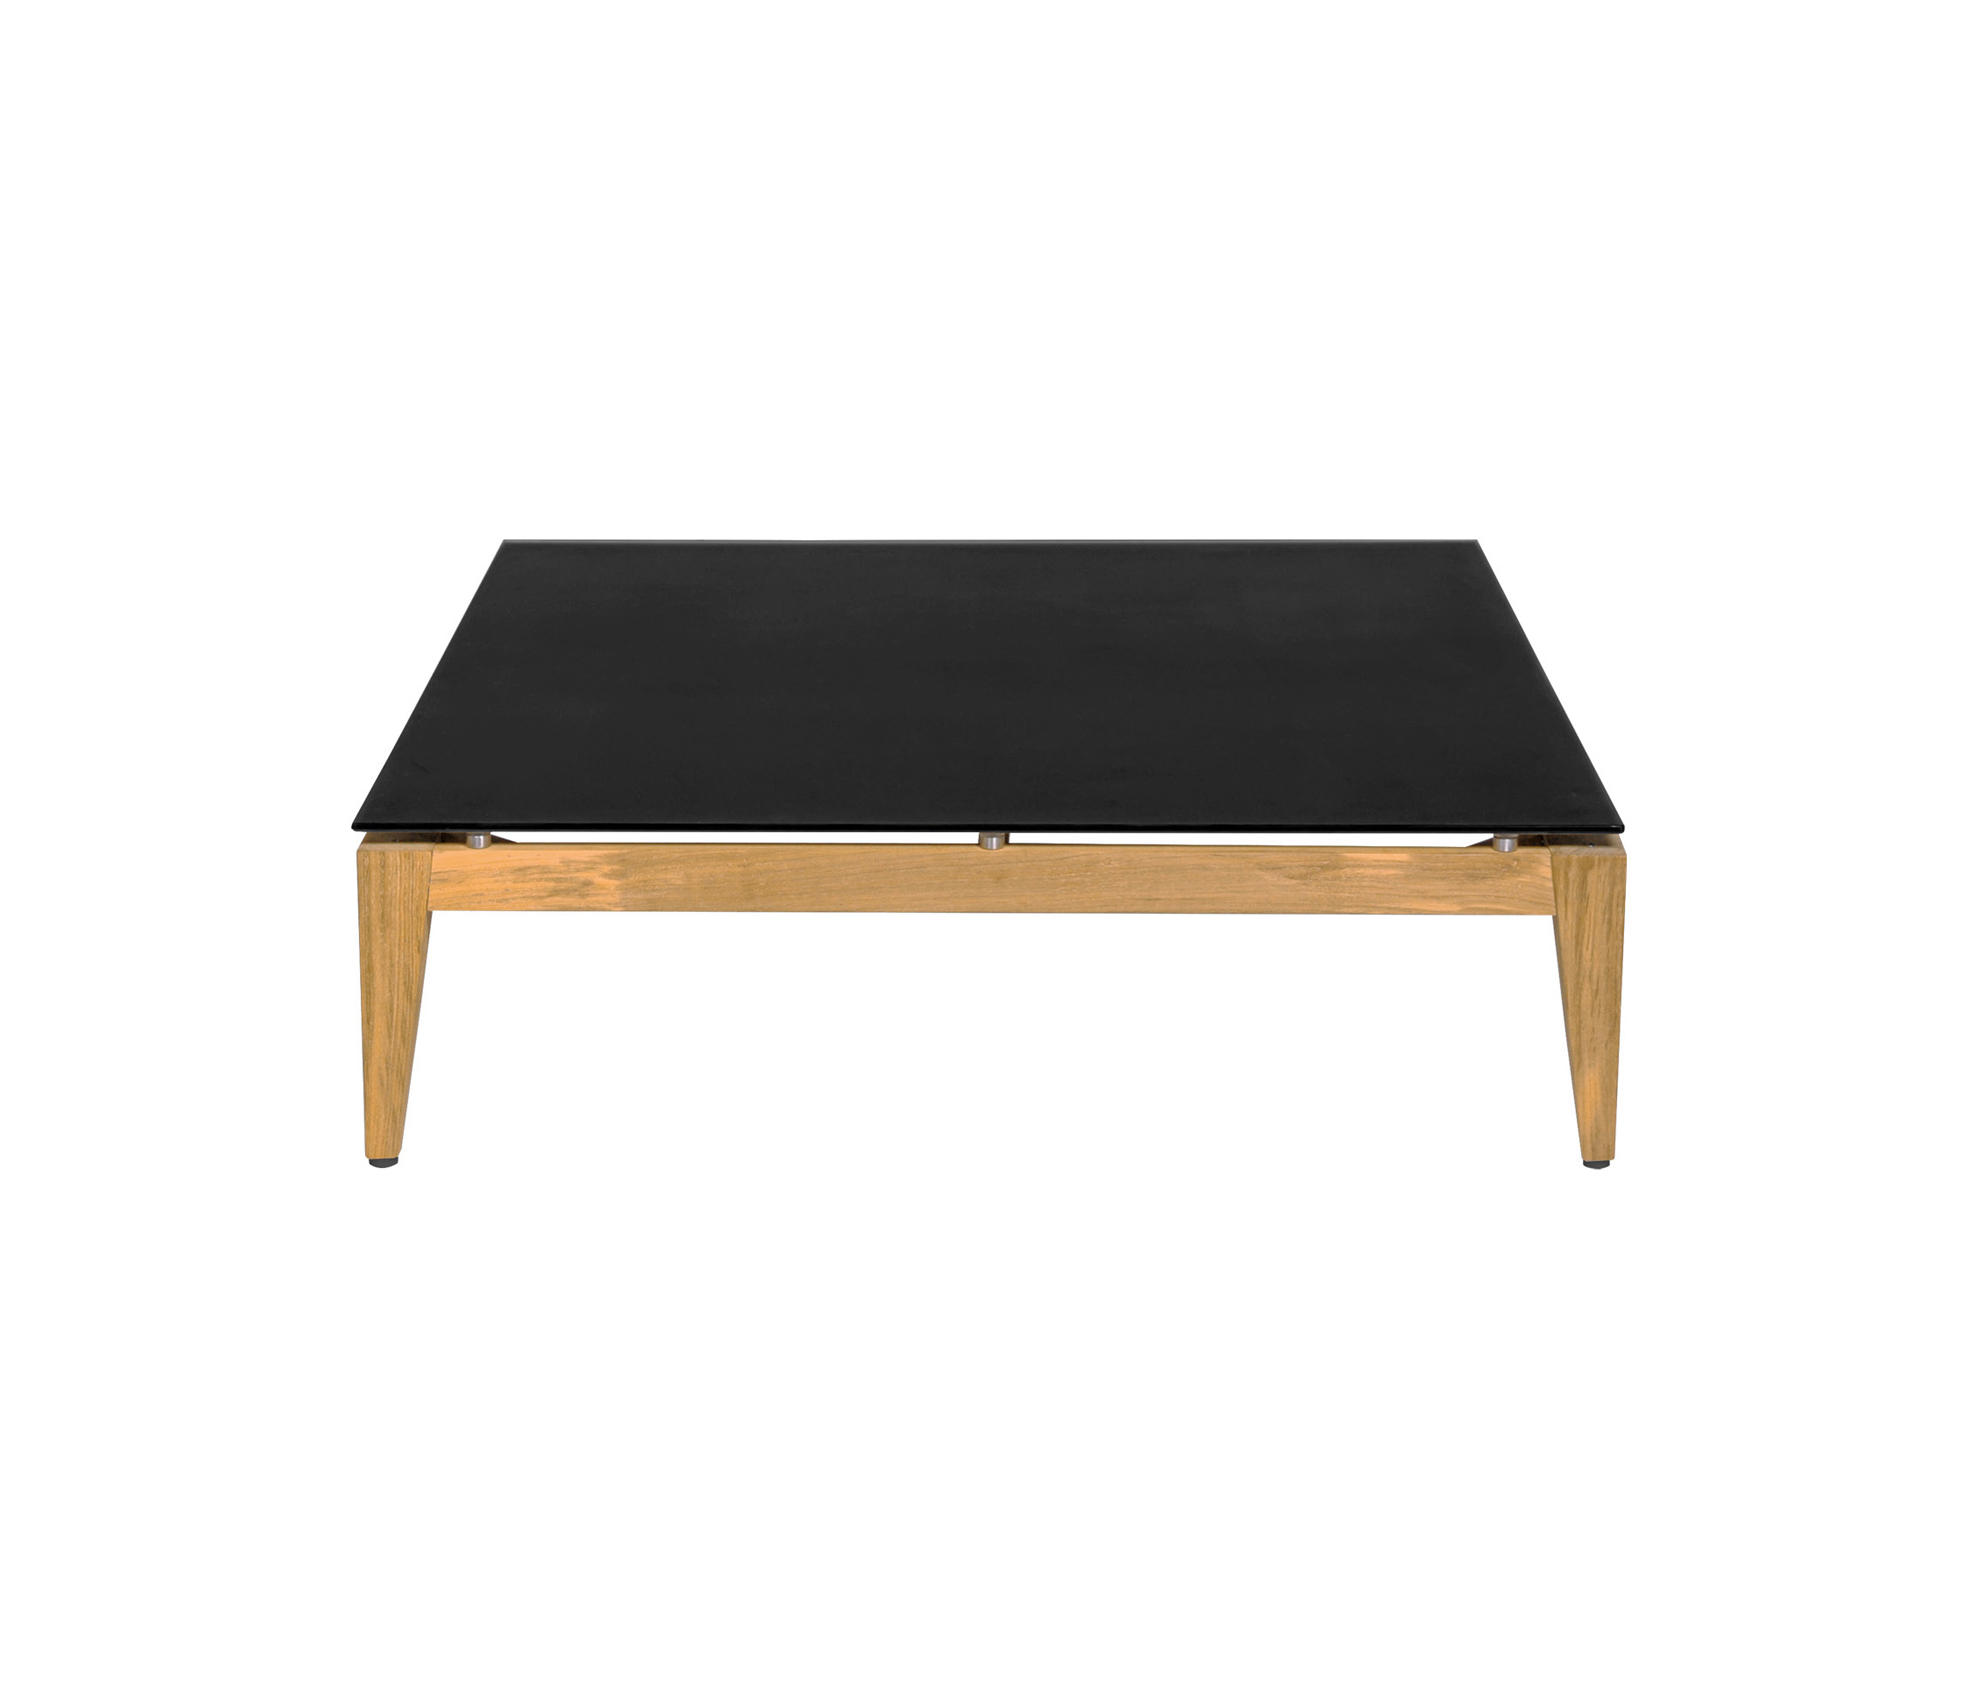 Twizt Low Coffee Table 96x96 Cm Glass Coffee Tables From Mamagreen Architonic